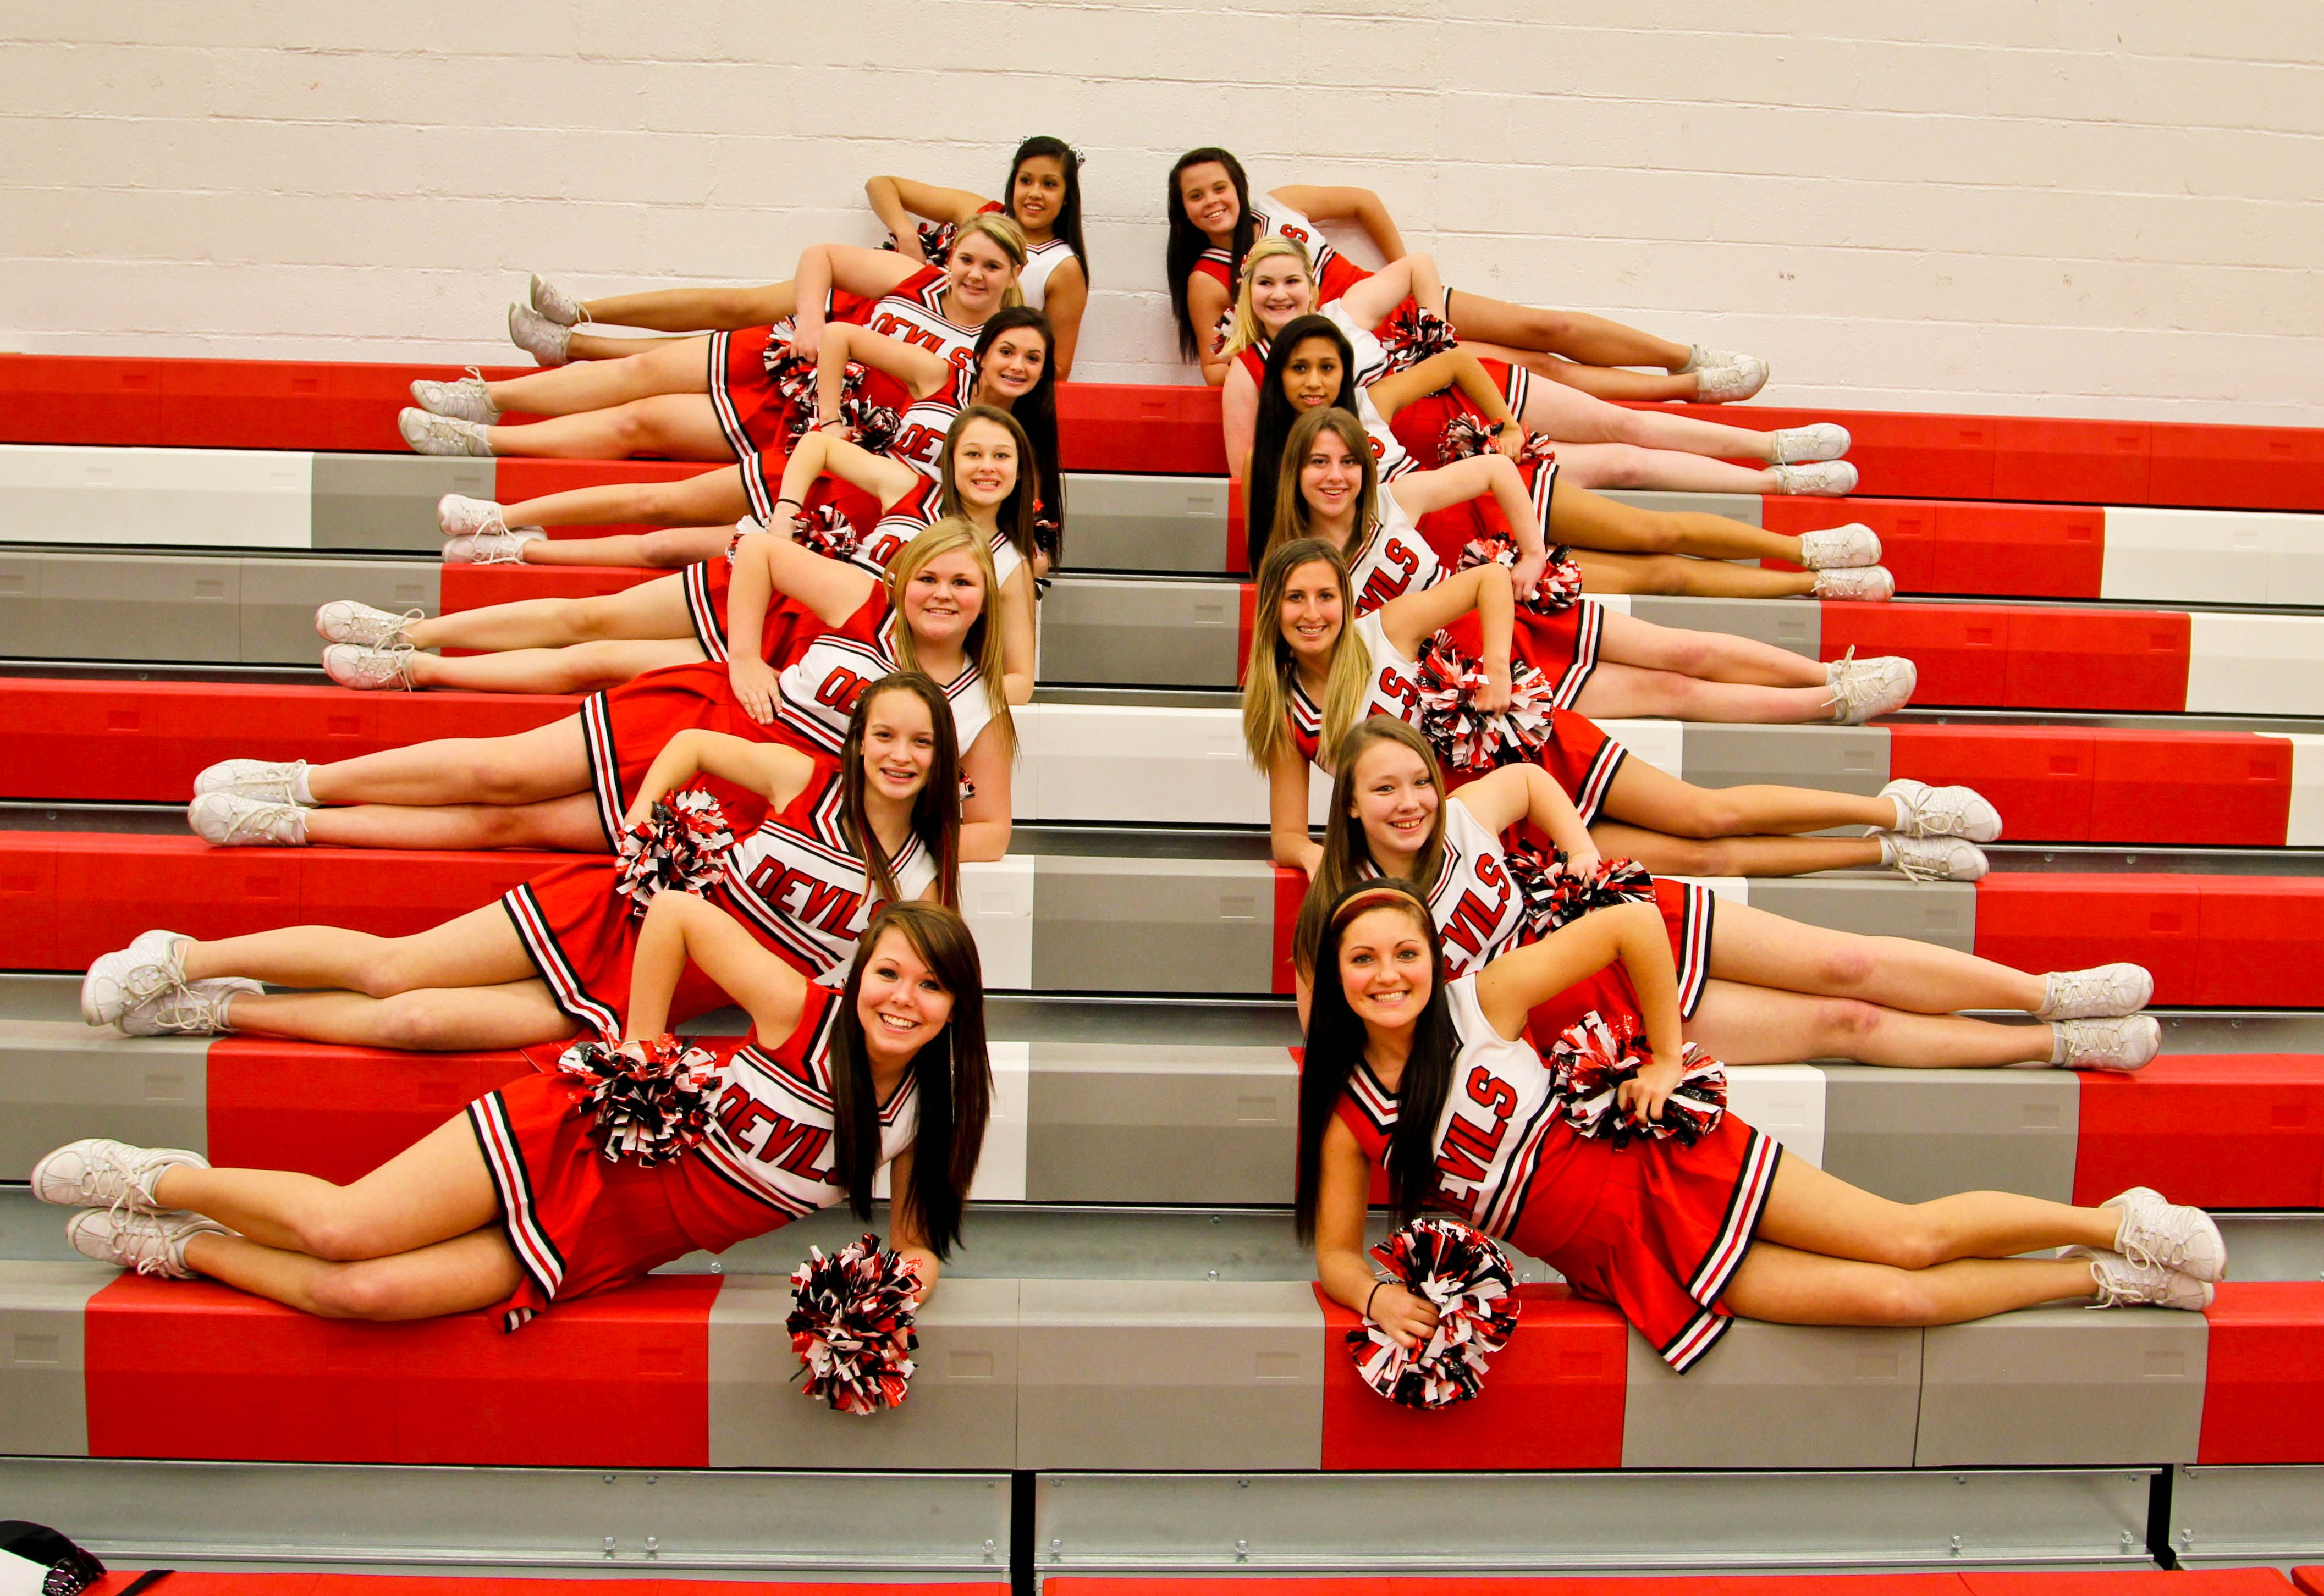 Cheerleading 101: Exercises - AES Cougar Cheer Cheerleading poses for pictures